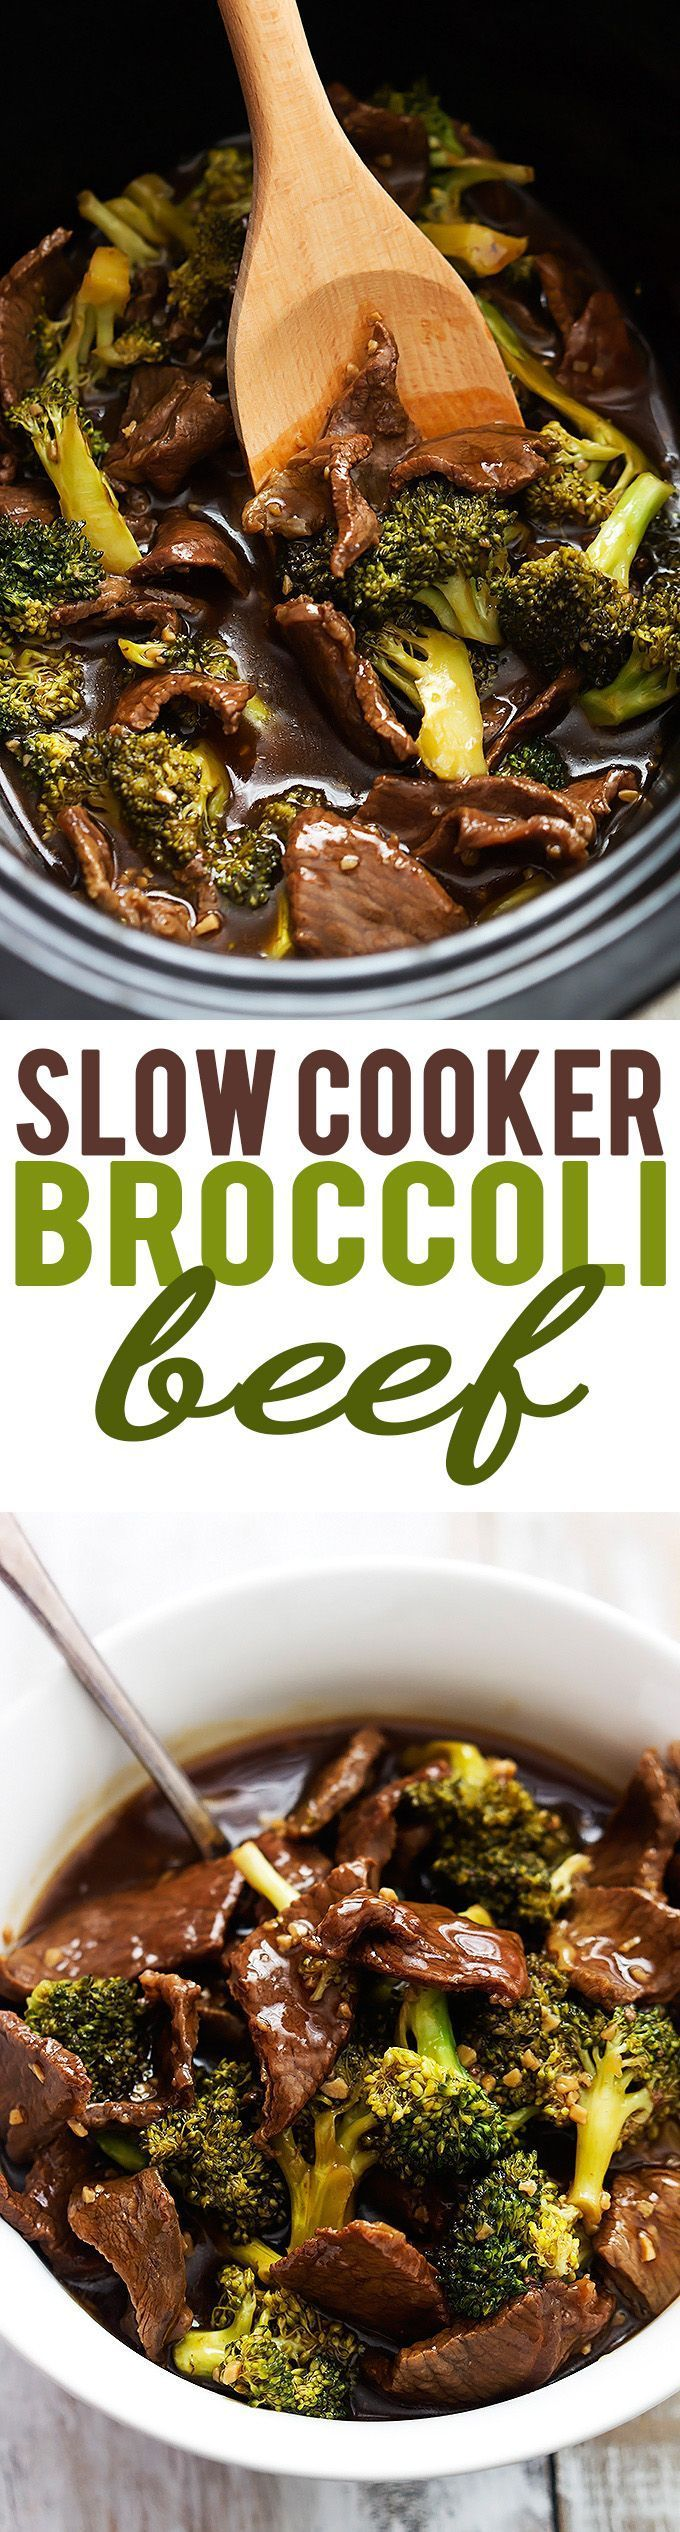 Slow Cooker Broccoli BEEF - http://www.followerr.net ** VISIT website for this amazing Recipe